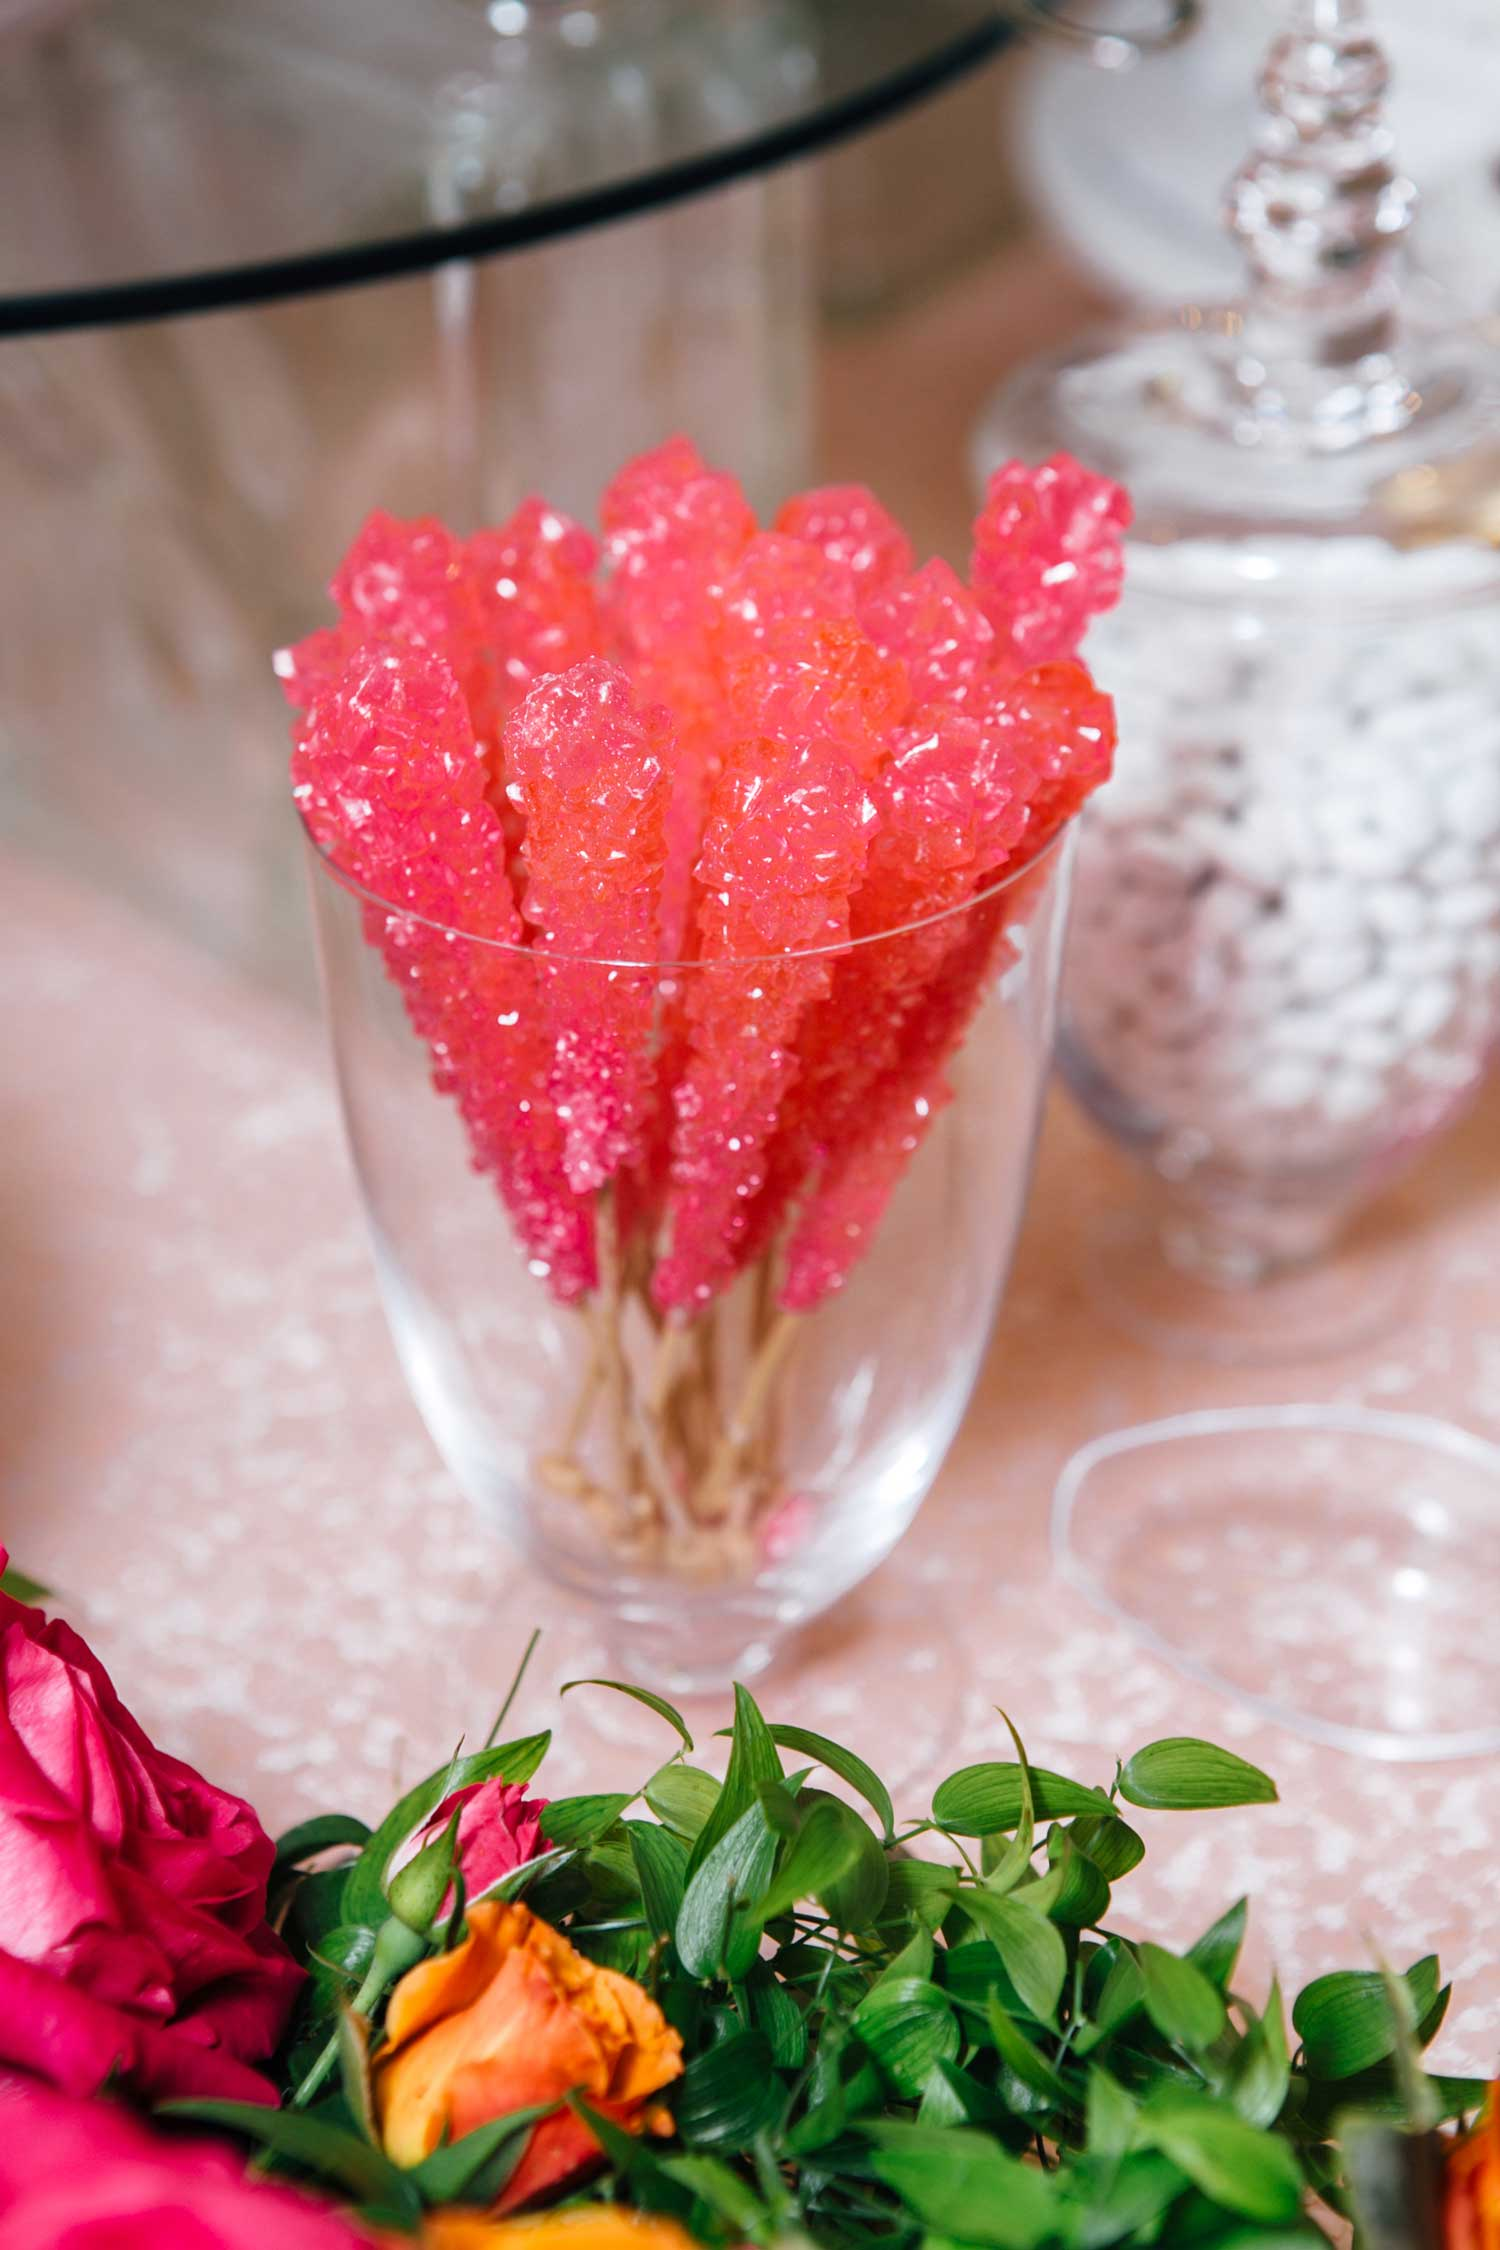 2019 Pantone Color of the Year Living Coral wedding ideas wedding dessert sweets table